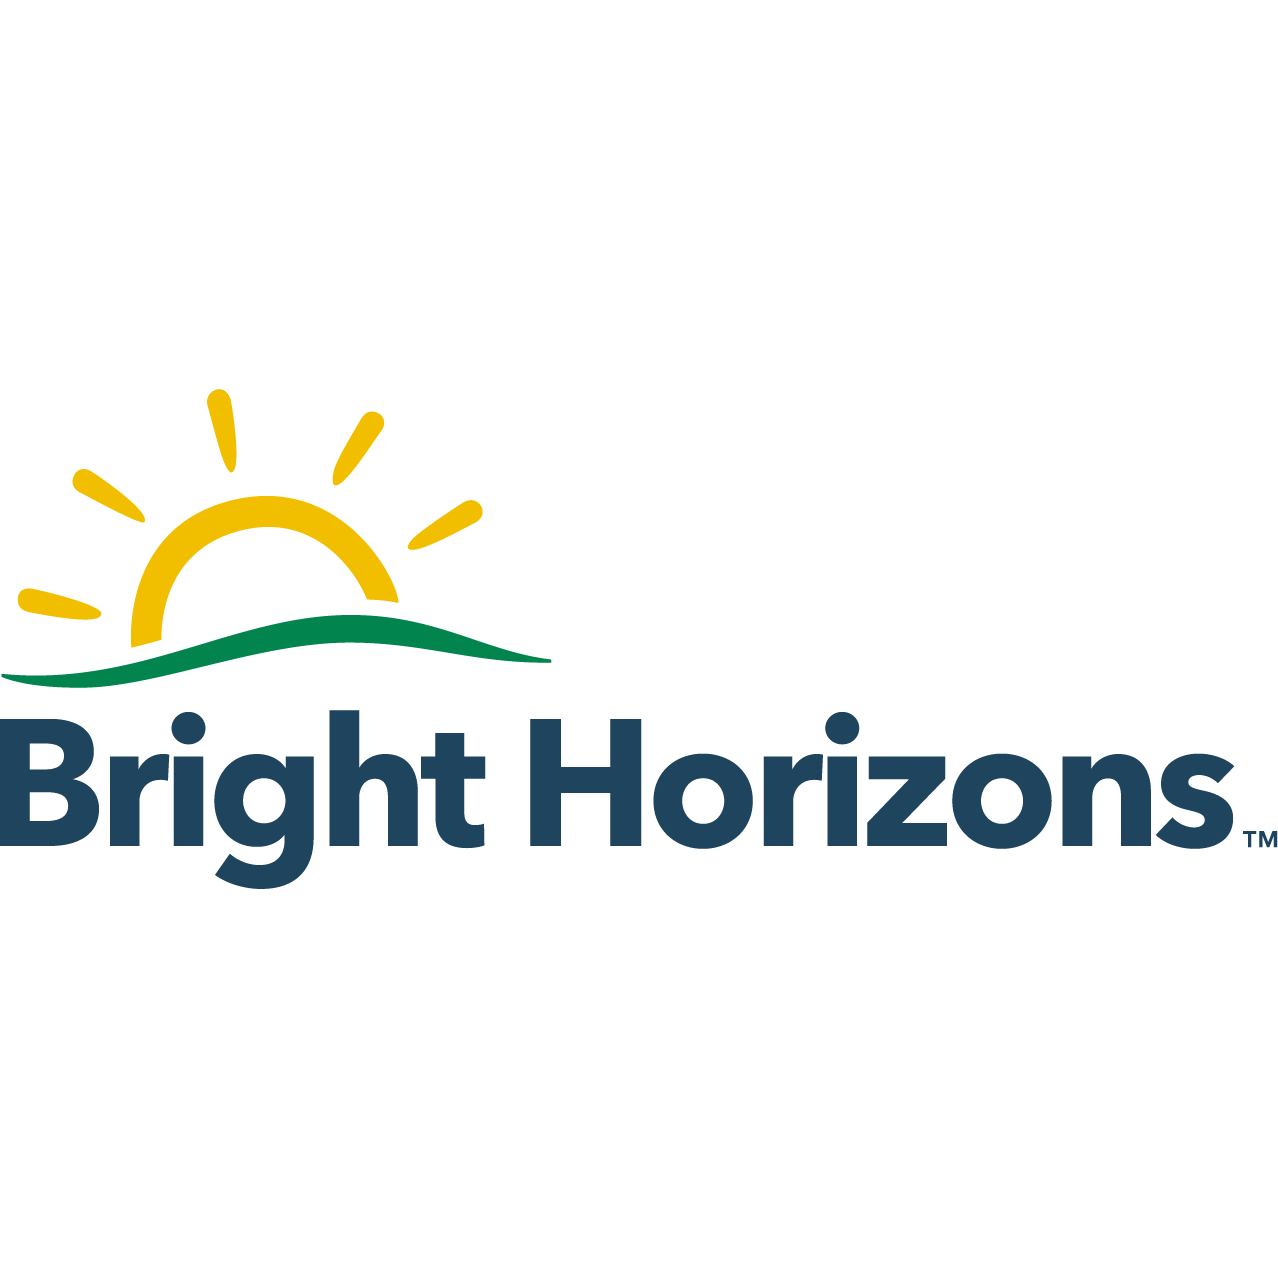 Bright Horizons Shortlands Day Nursery and Preschool - Bromley, London BR2 0EF - 03333 054643 | ShowMeLocal.com